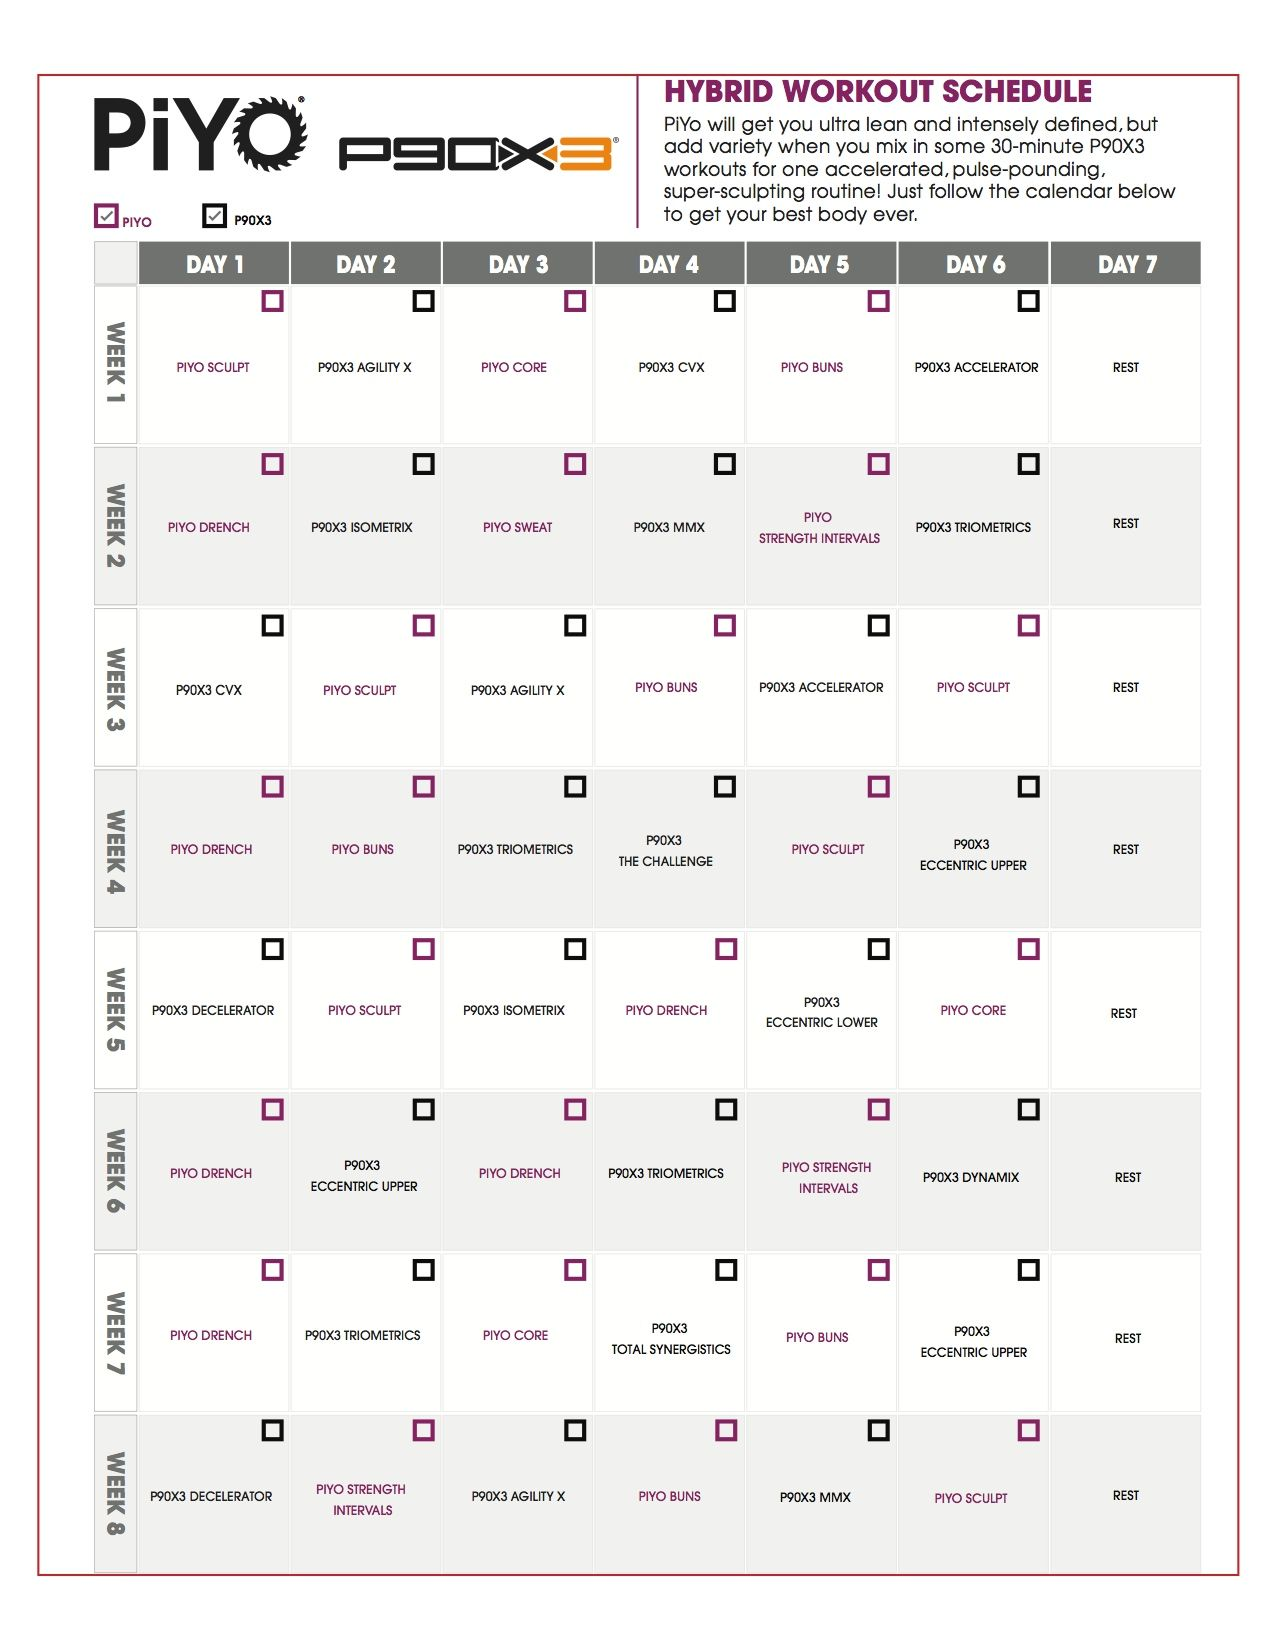 worksheet P90x Worksheets Pdf p90x lean my first 90 days that i am doing fitness piyo will get you ultra and intensely defined but add variety when mix